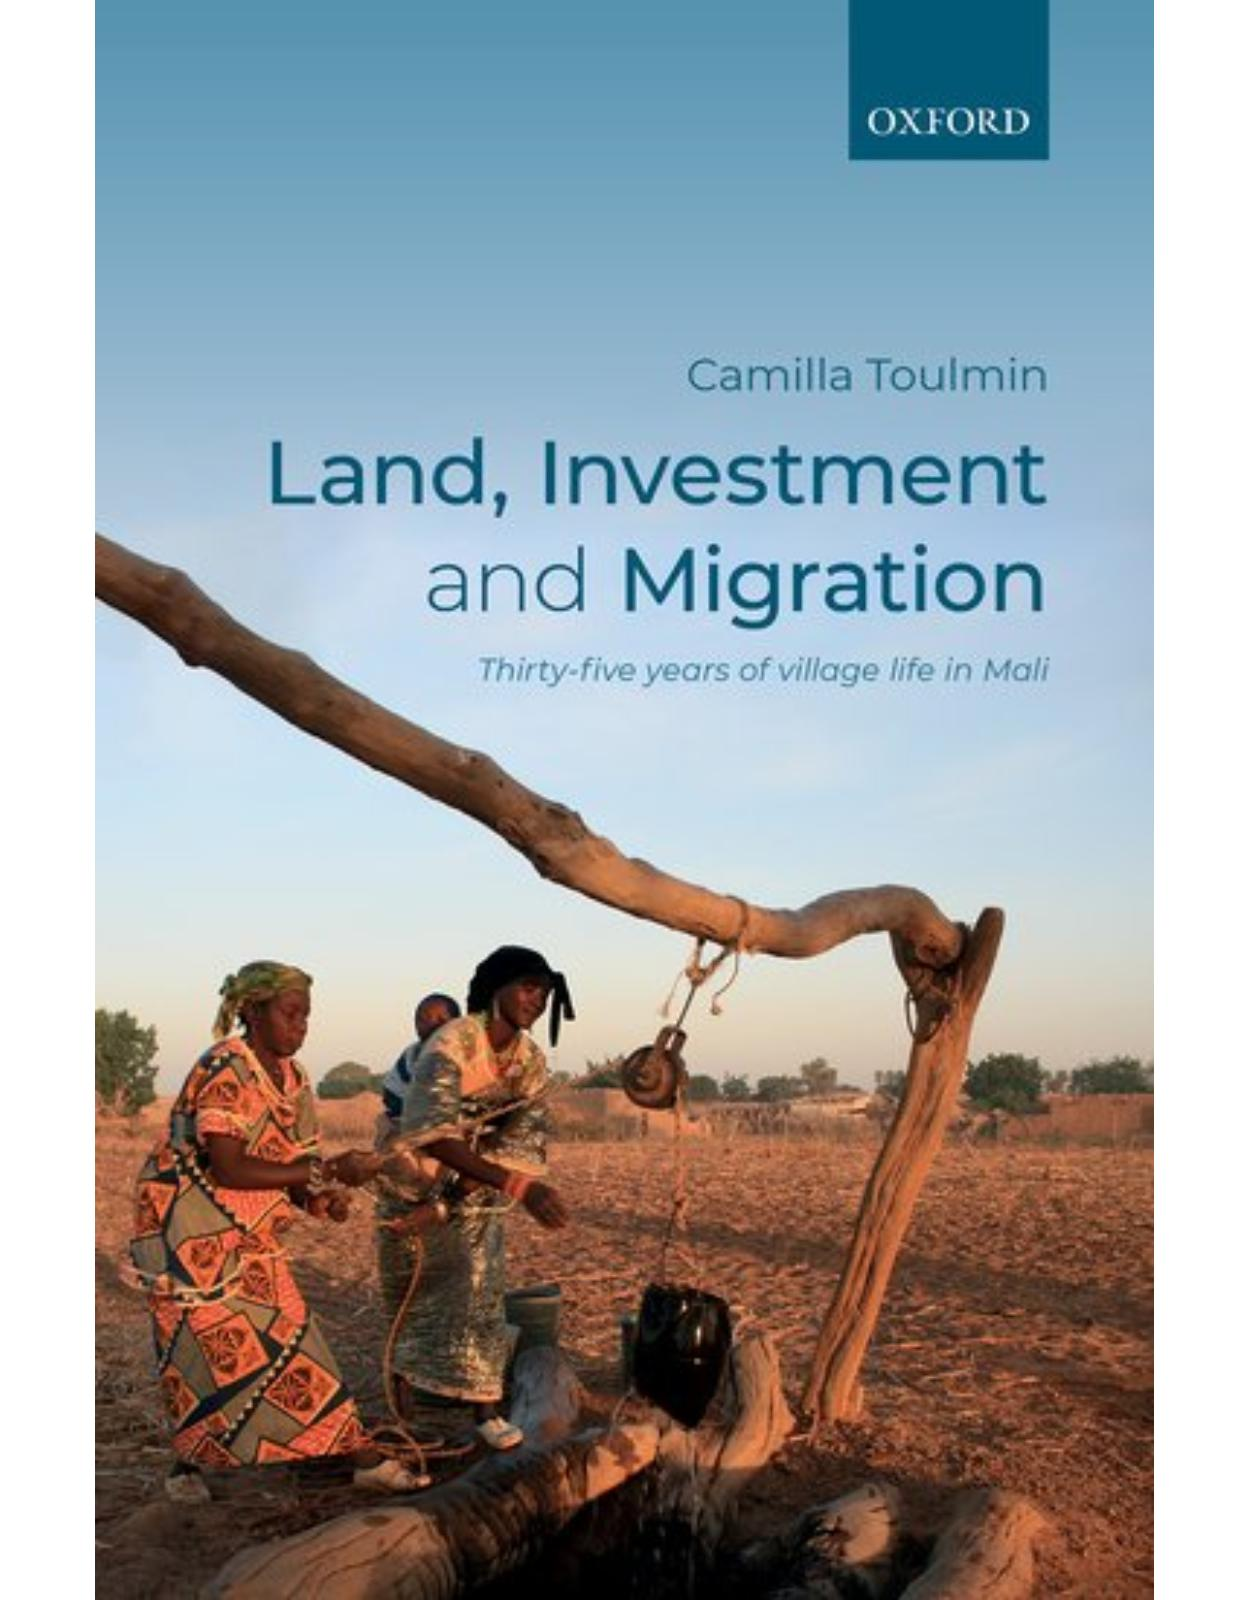 Land, Investment, and Migration